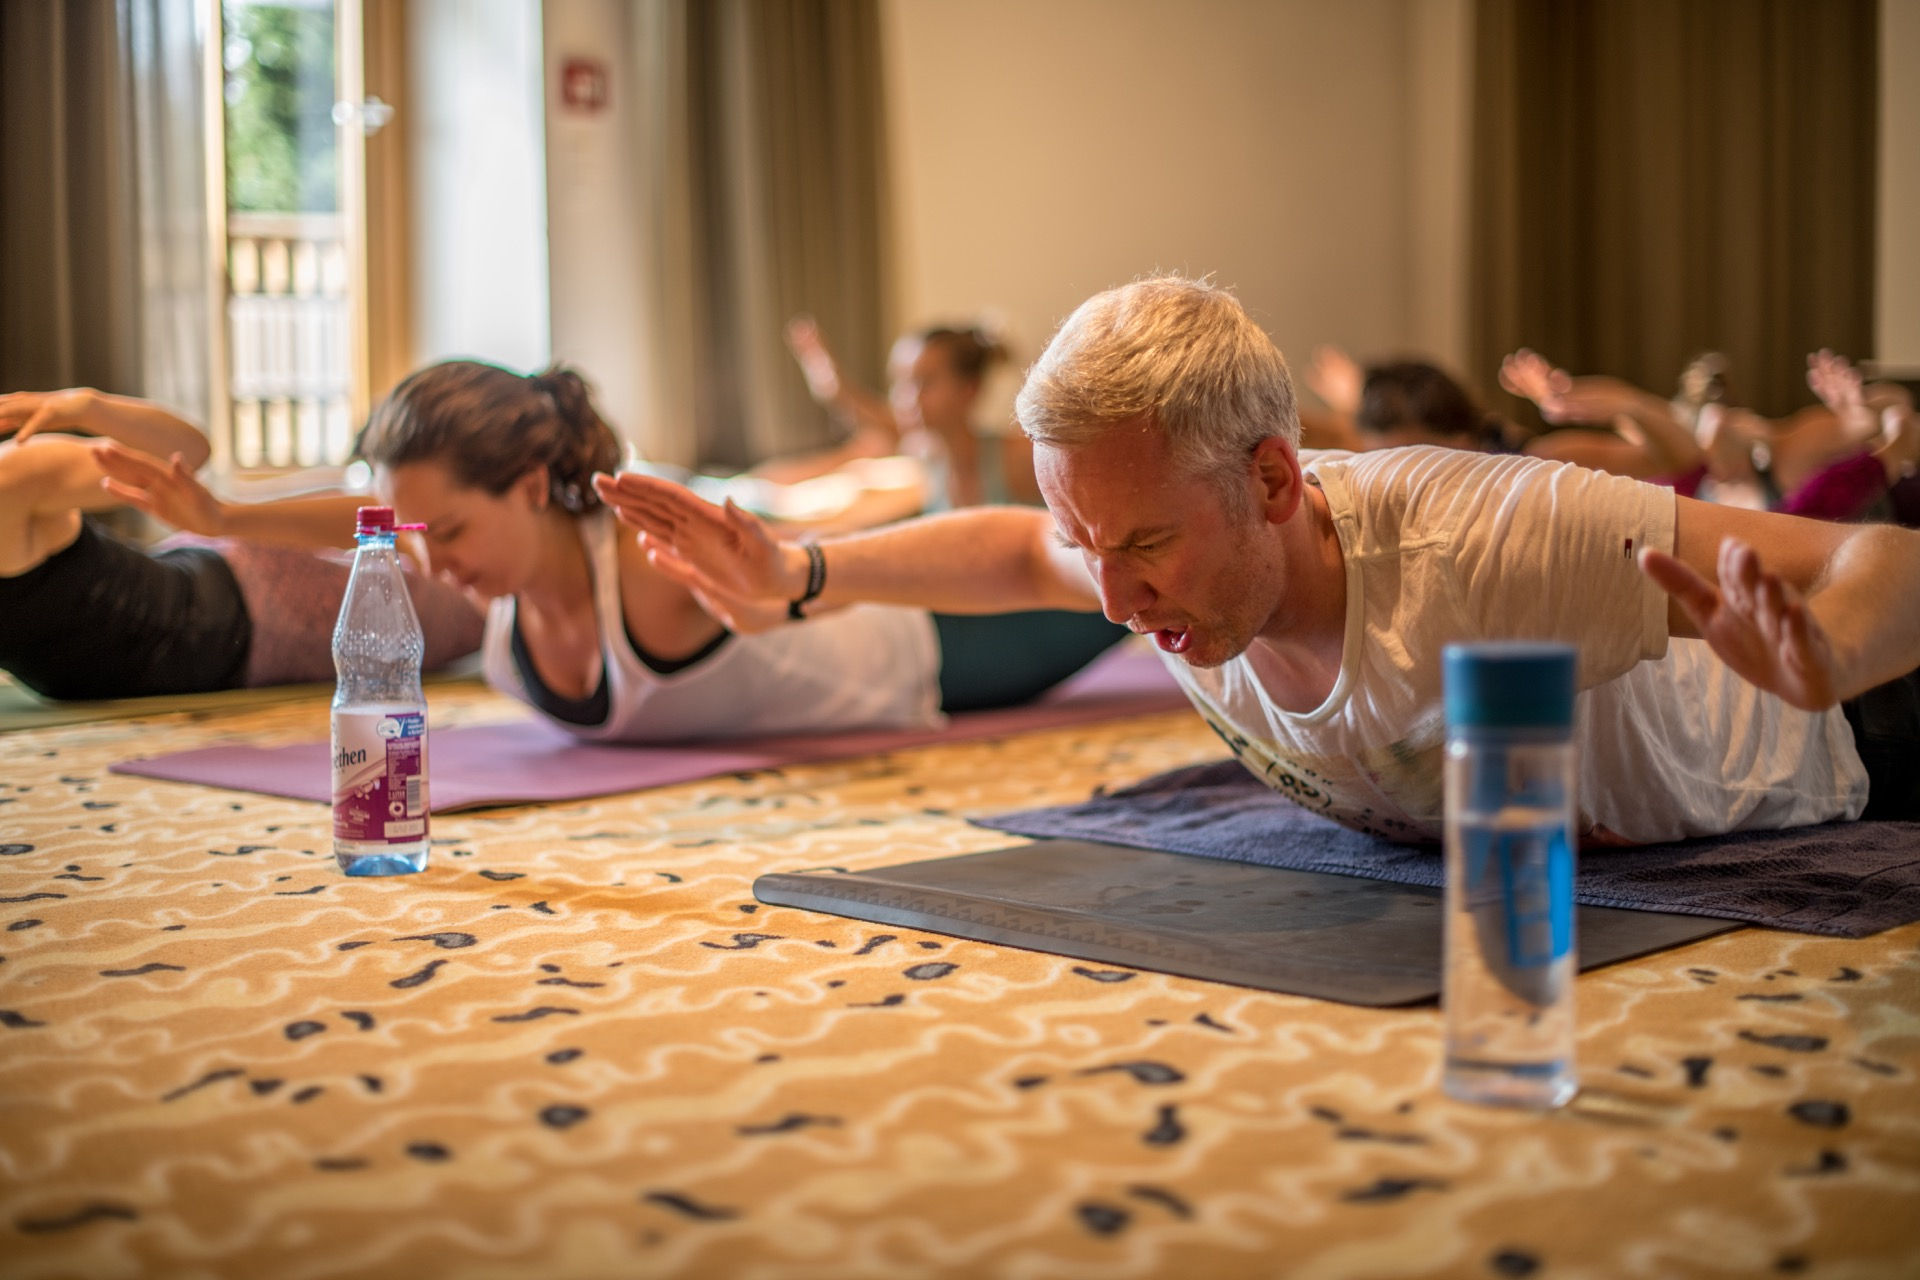 Hie-Kim-Friends-2019-Yoga-Retreat-Alina-Matis-Photography-104 - Hie Kim Yoga - Yoga Retreat - Yoga Workshops und Reisen